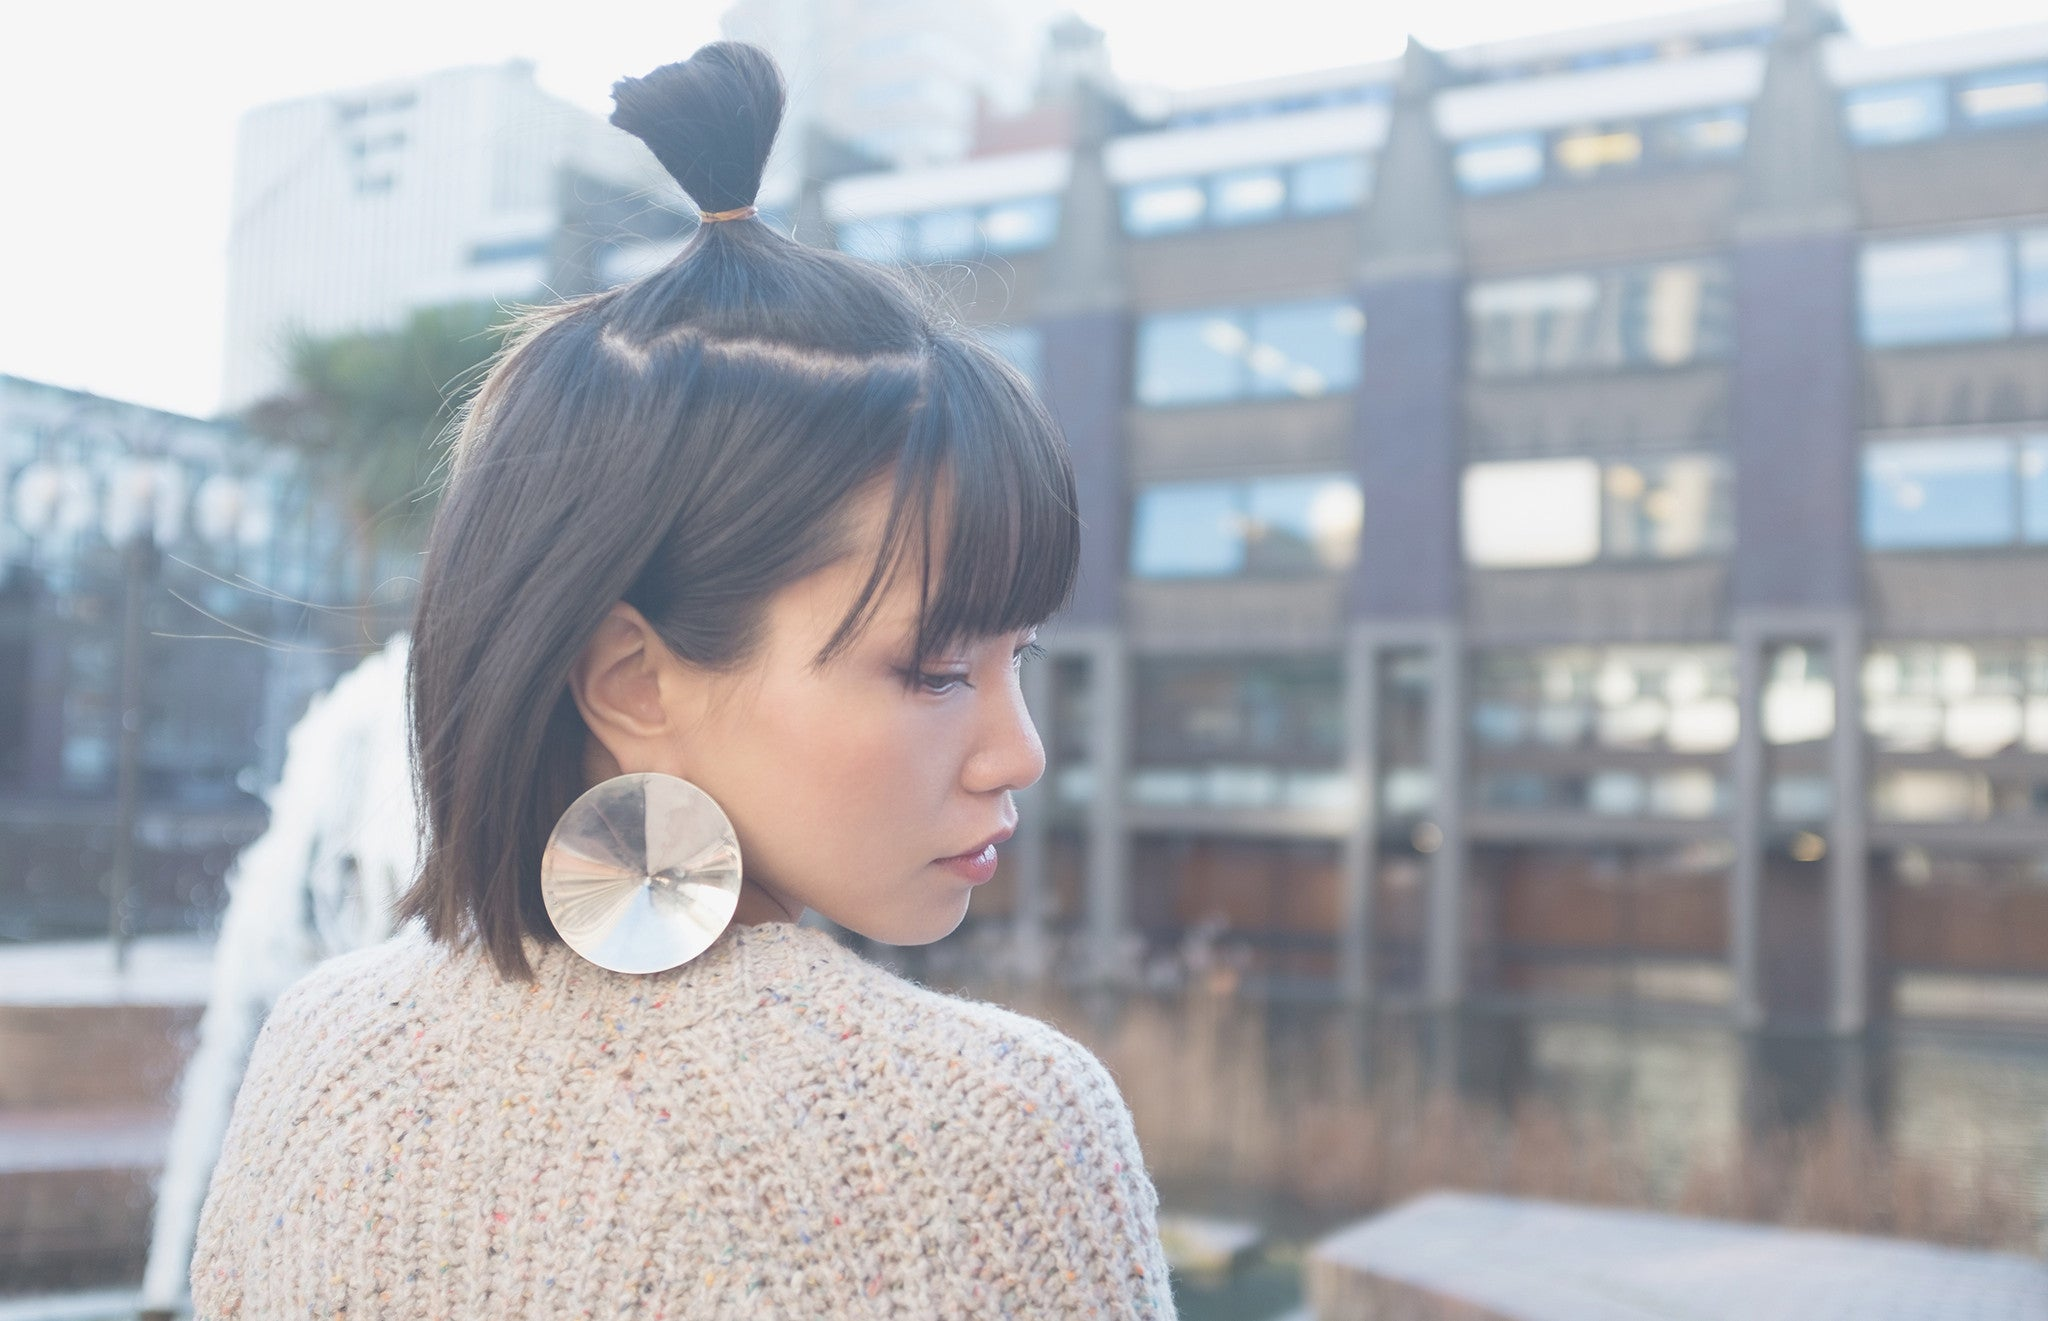 Asymmetrical earring by Lion Studio | Starry night - New collection by designer YUAN | On Slowness blog